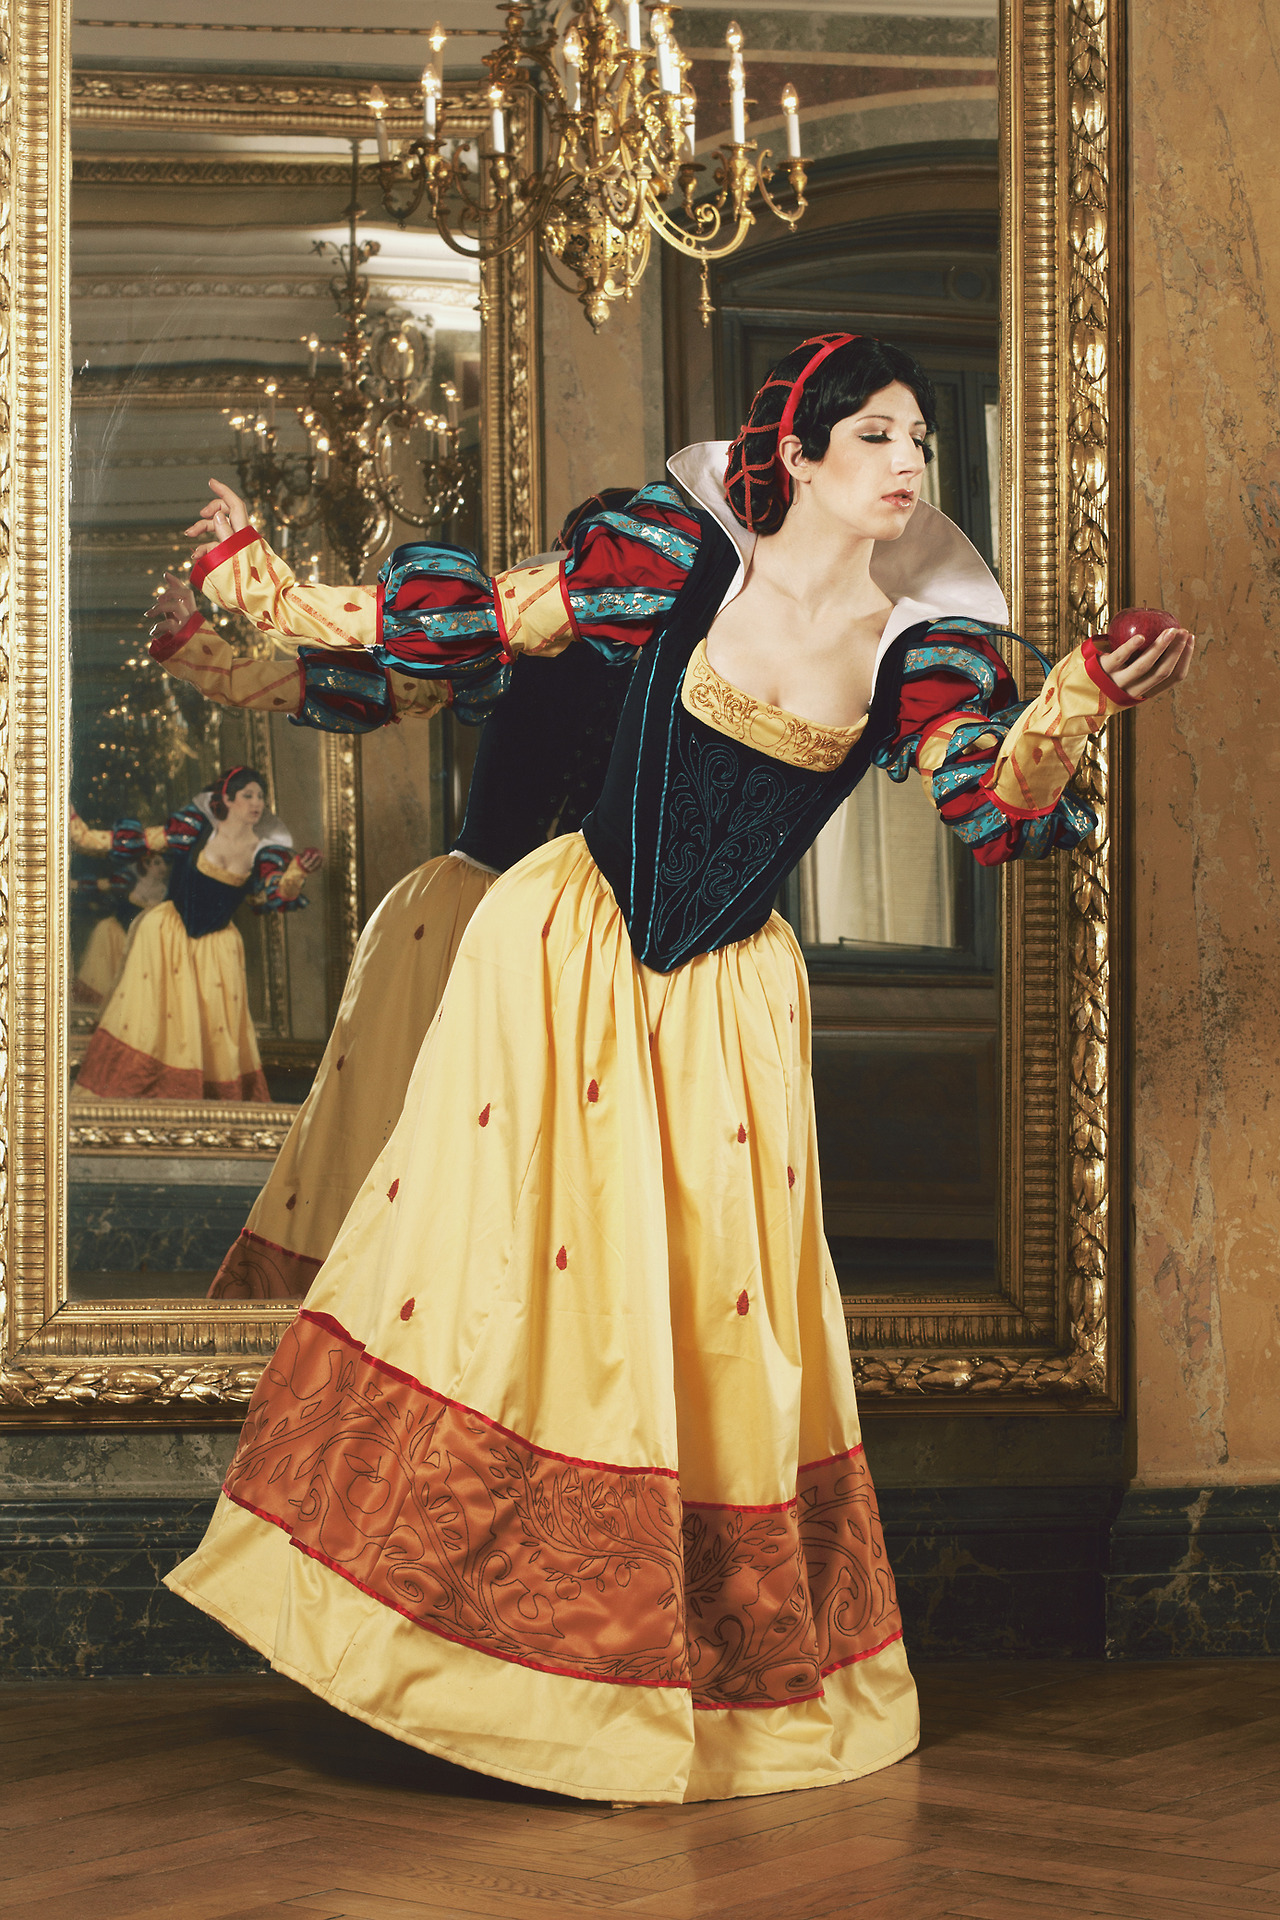 Cosplay Monday: Historically Accurate Snow White | Tosche ...